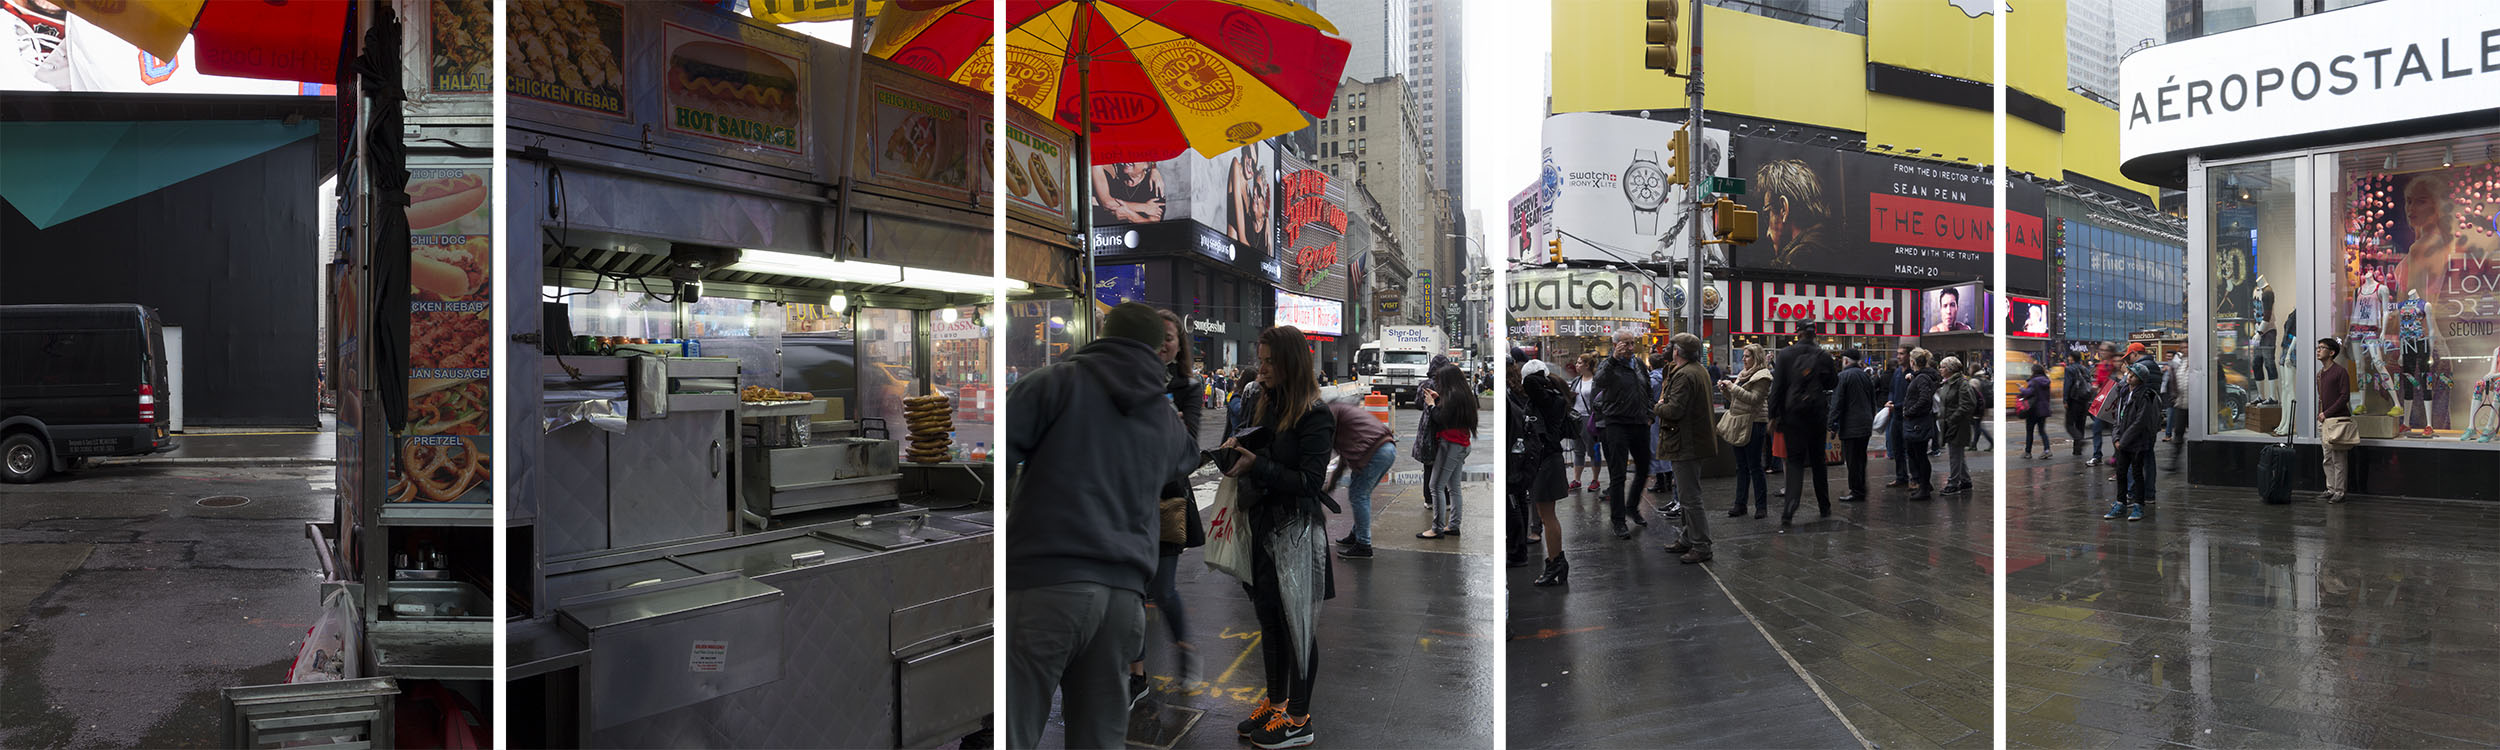 New York, Times Square, 4-20-2015, 8400-8413